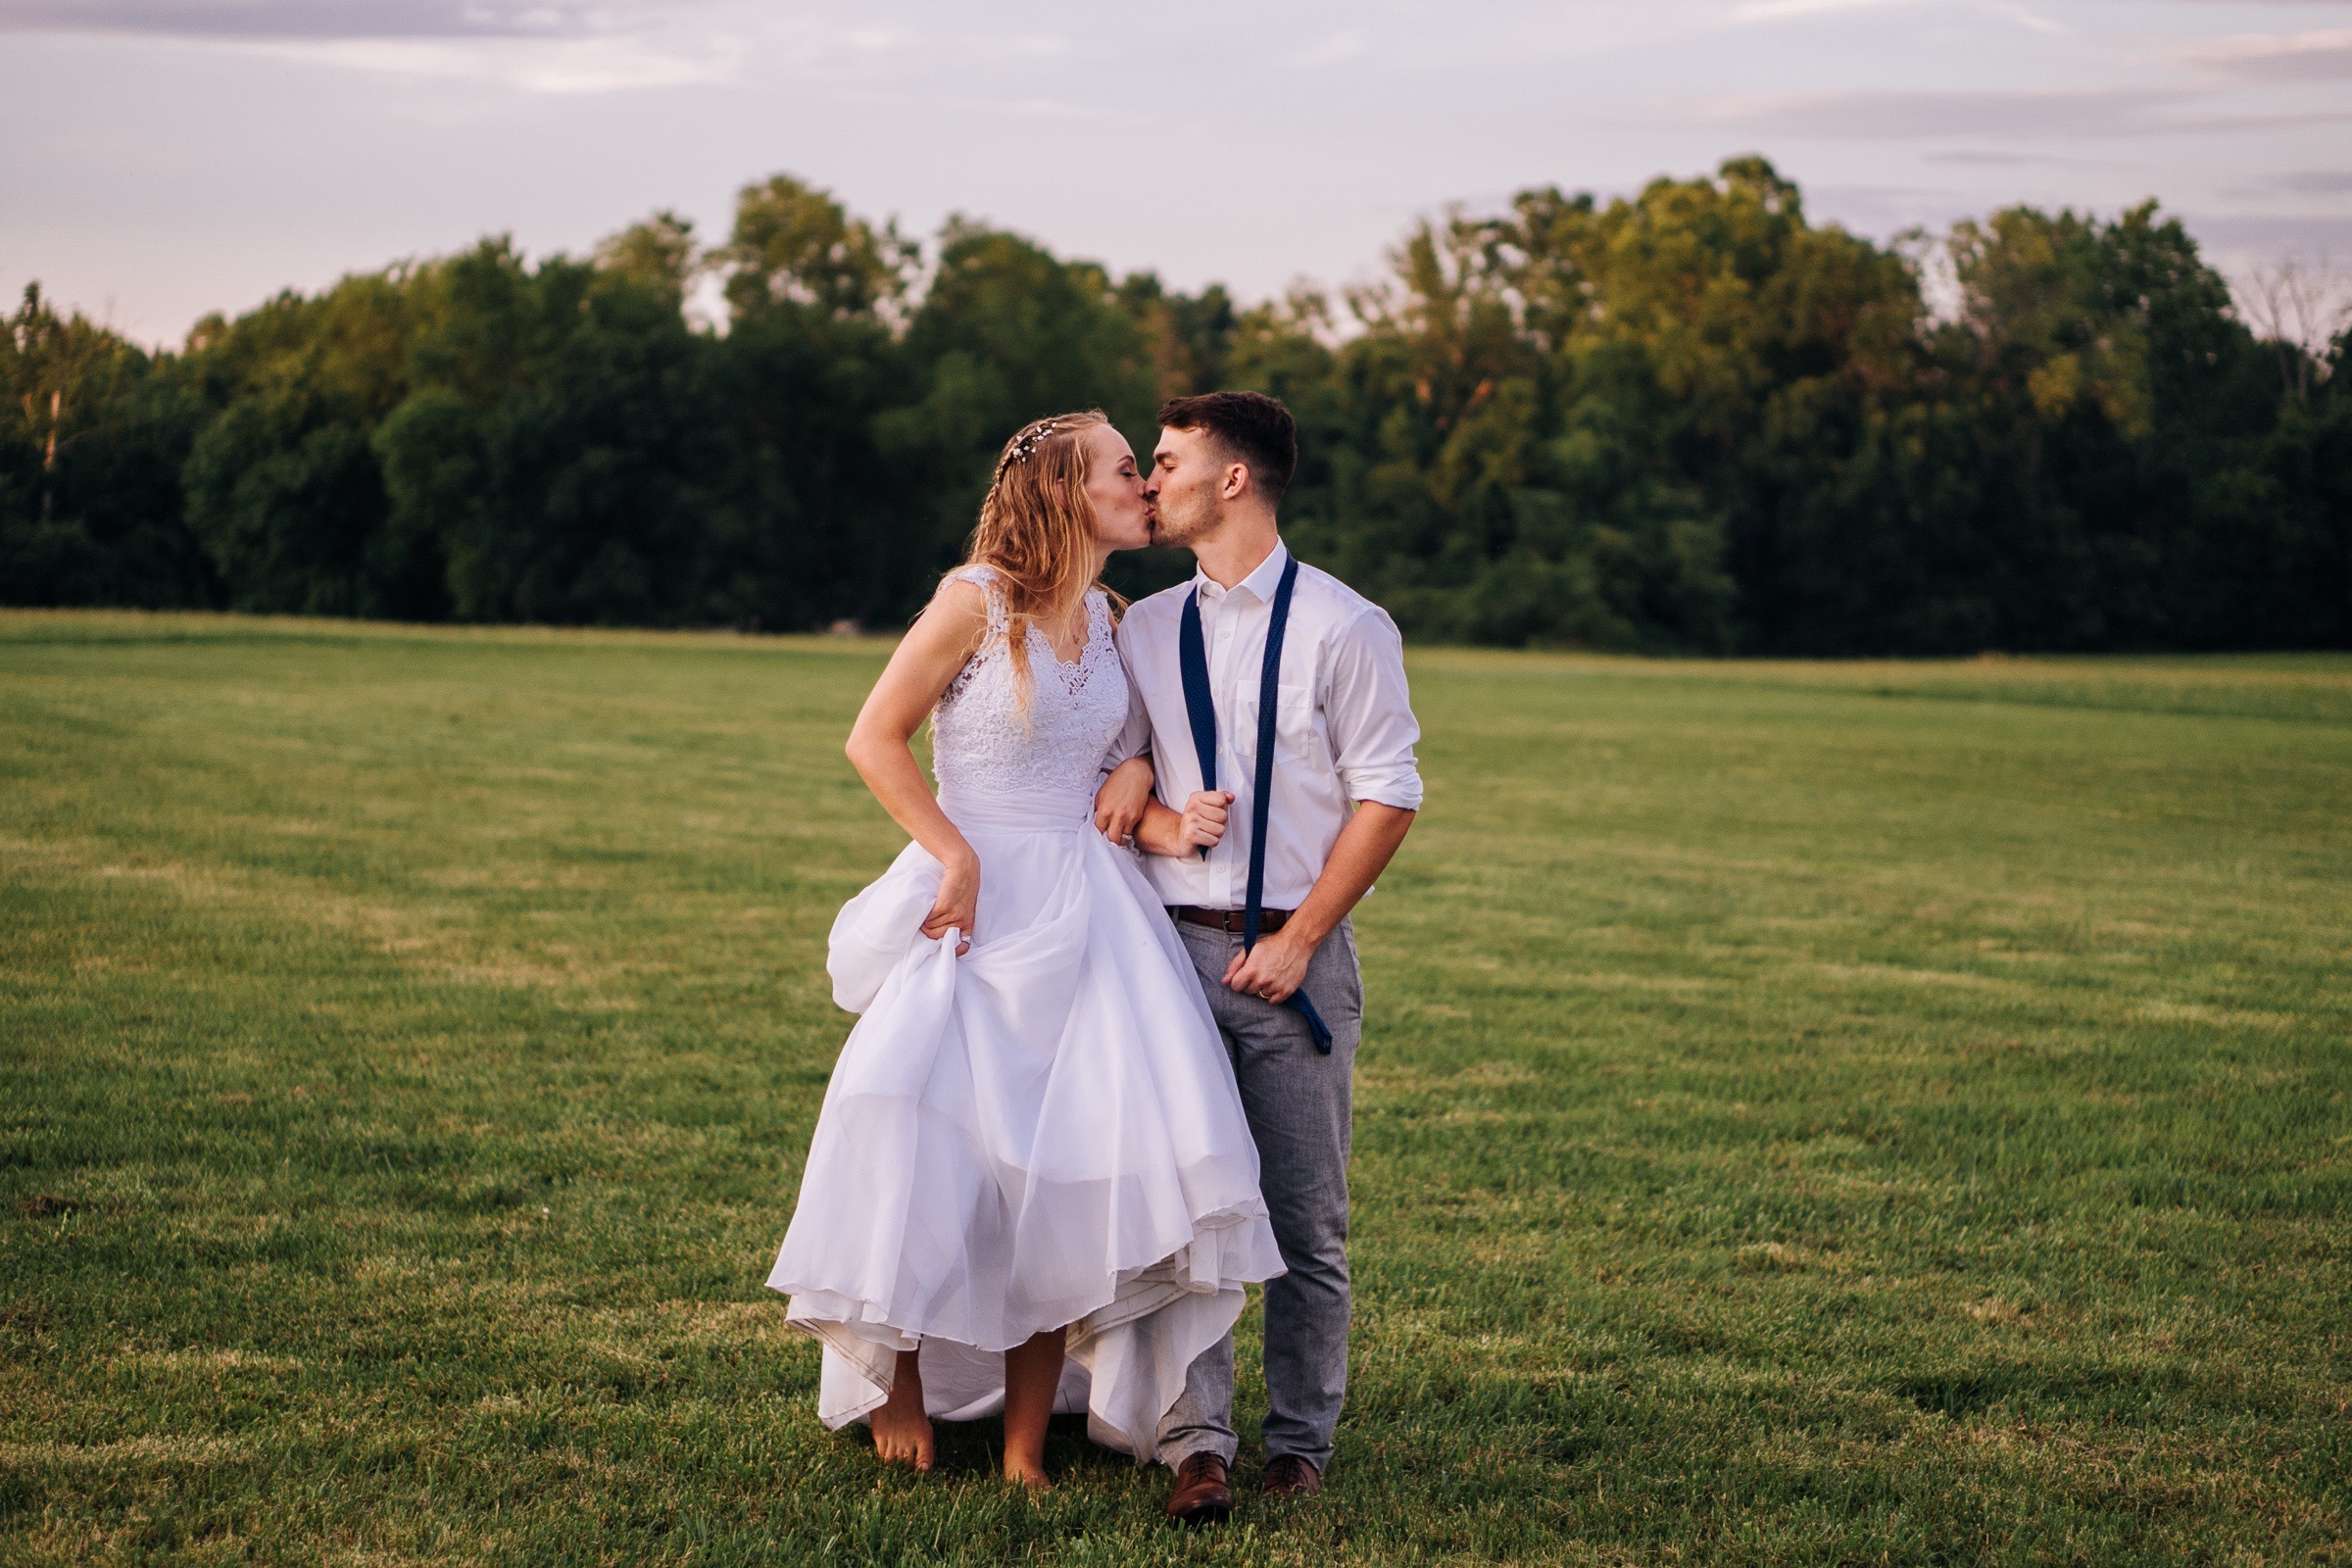 Michael and Abigael Virginia Warehouse Industrial Boho Wedding in Blue and Ivory by Jonathan Hannah Photography-40.jpg